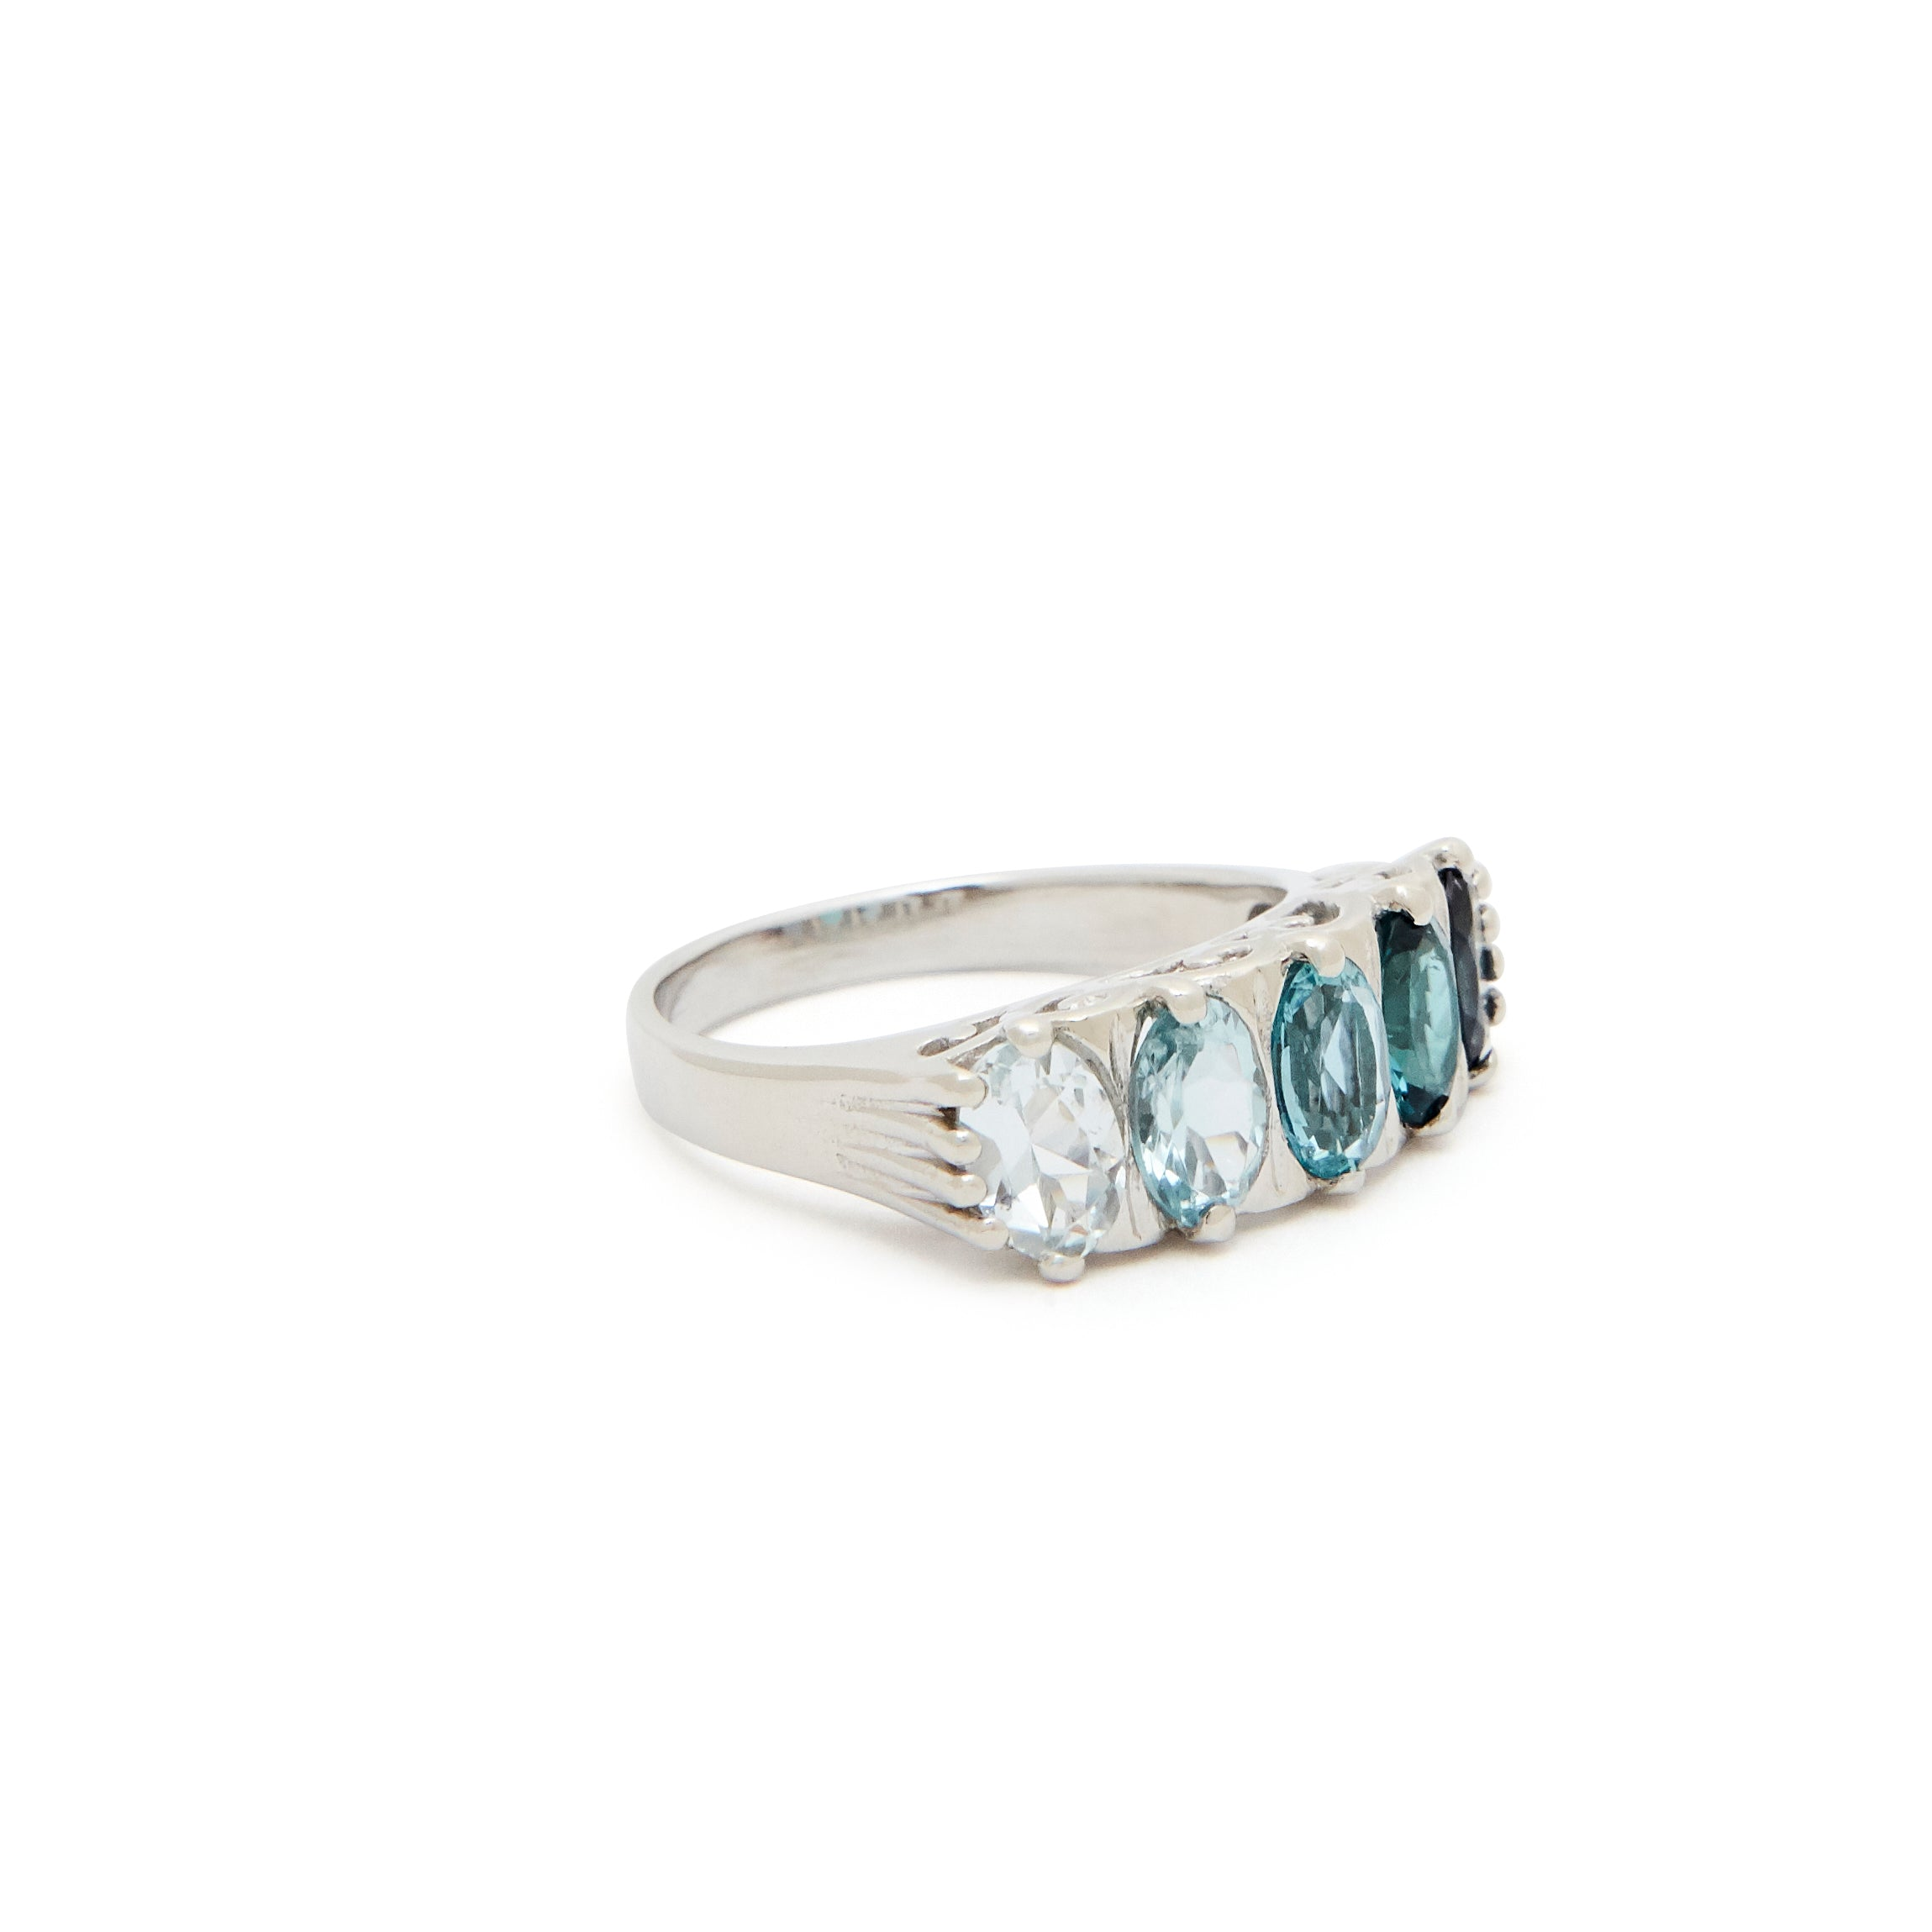 The F&B Ocean Ombre Ring